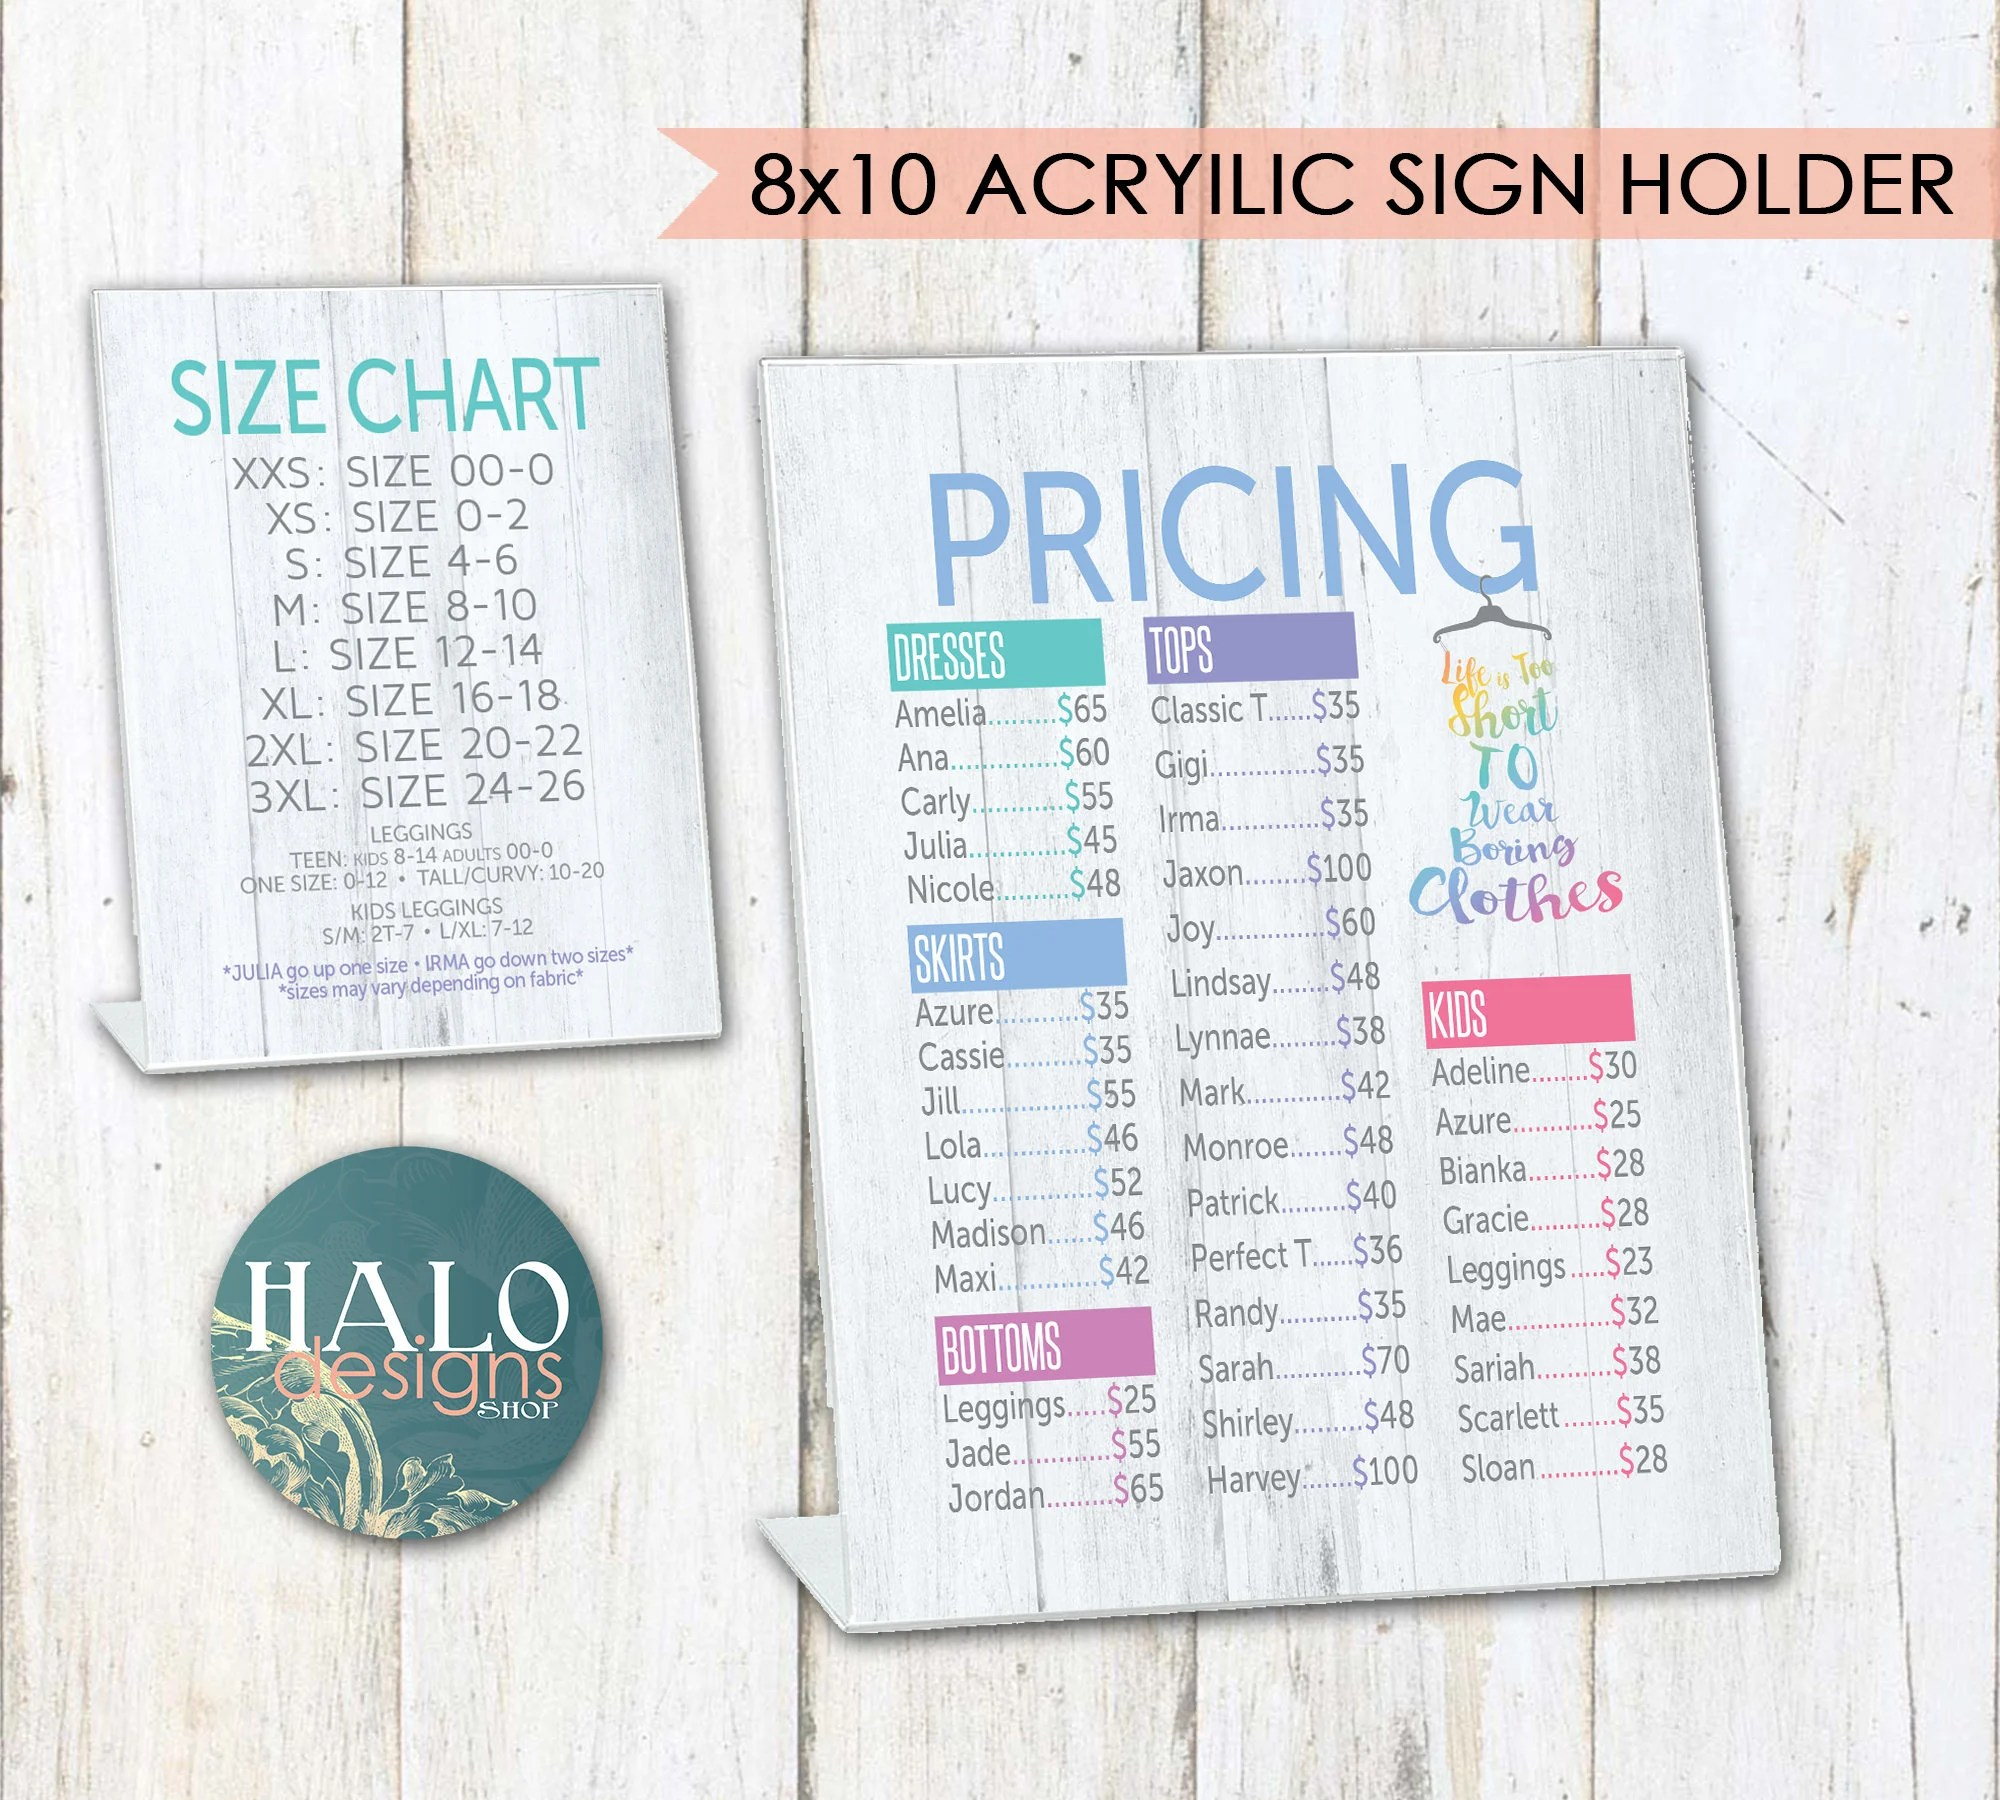 LLR Pricing  Size Charts for Pop-Up Boutiques Rustic Wood Etsy